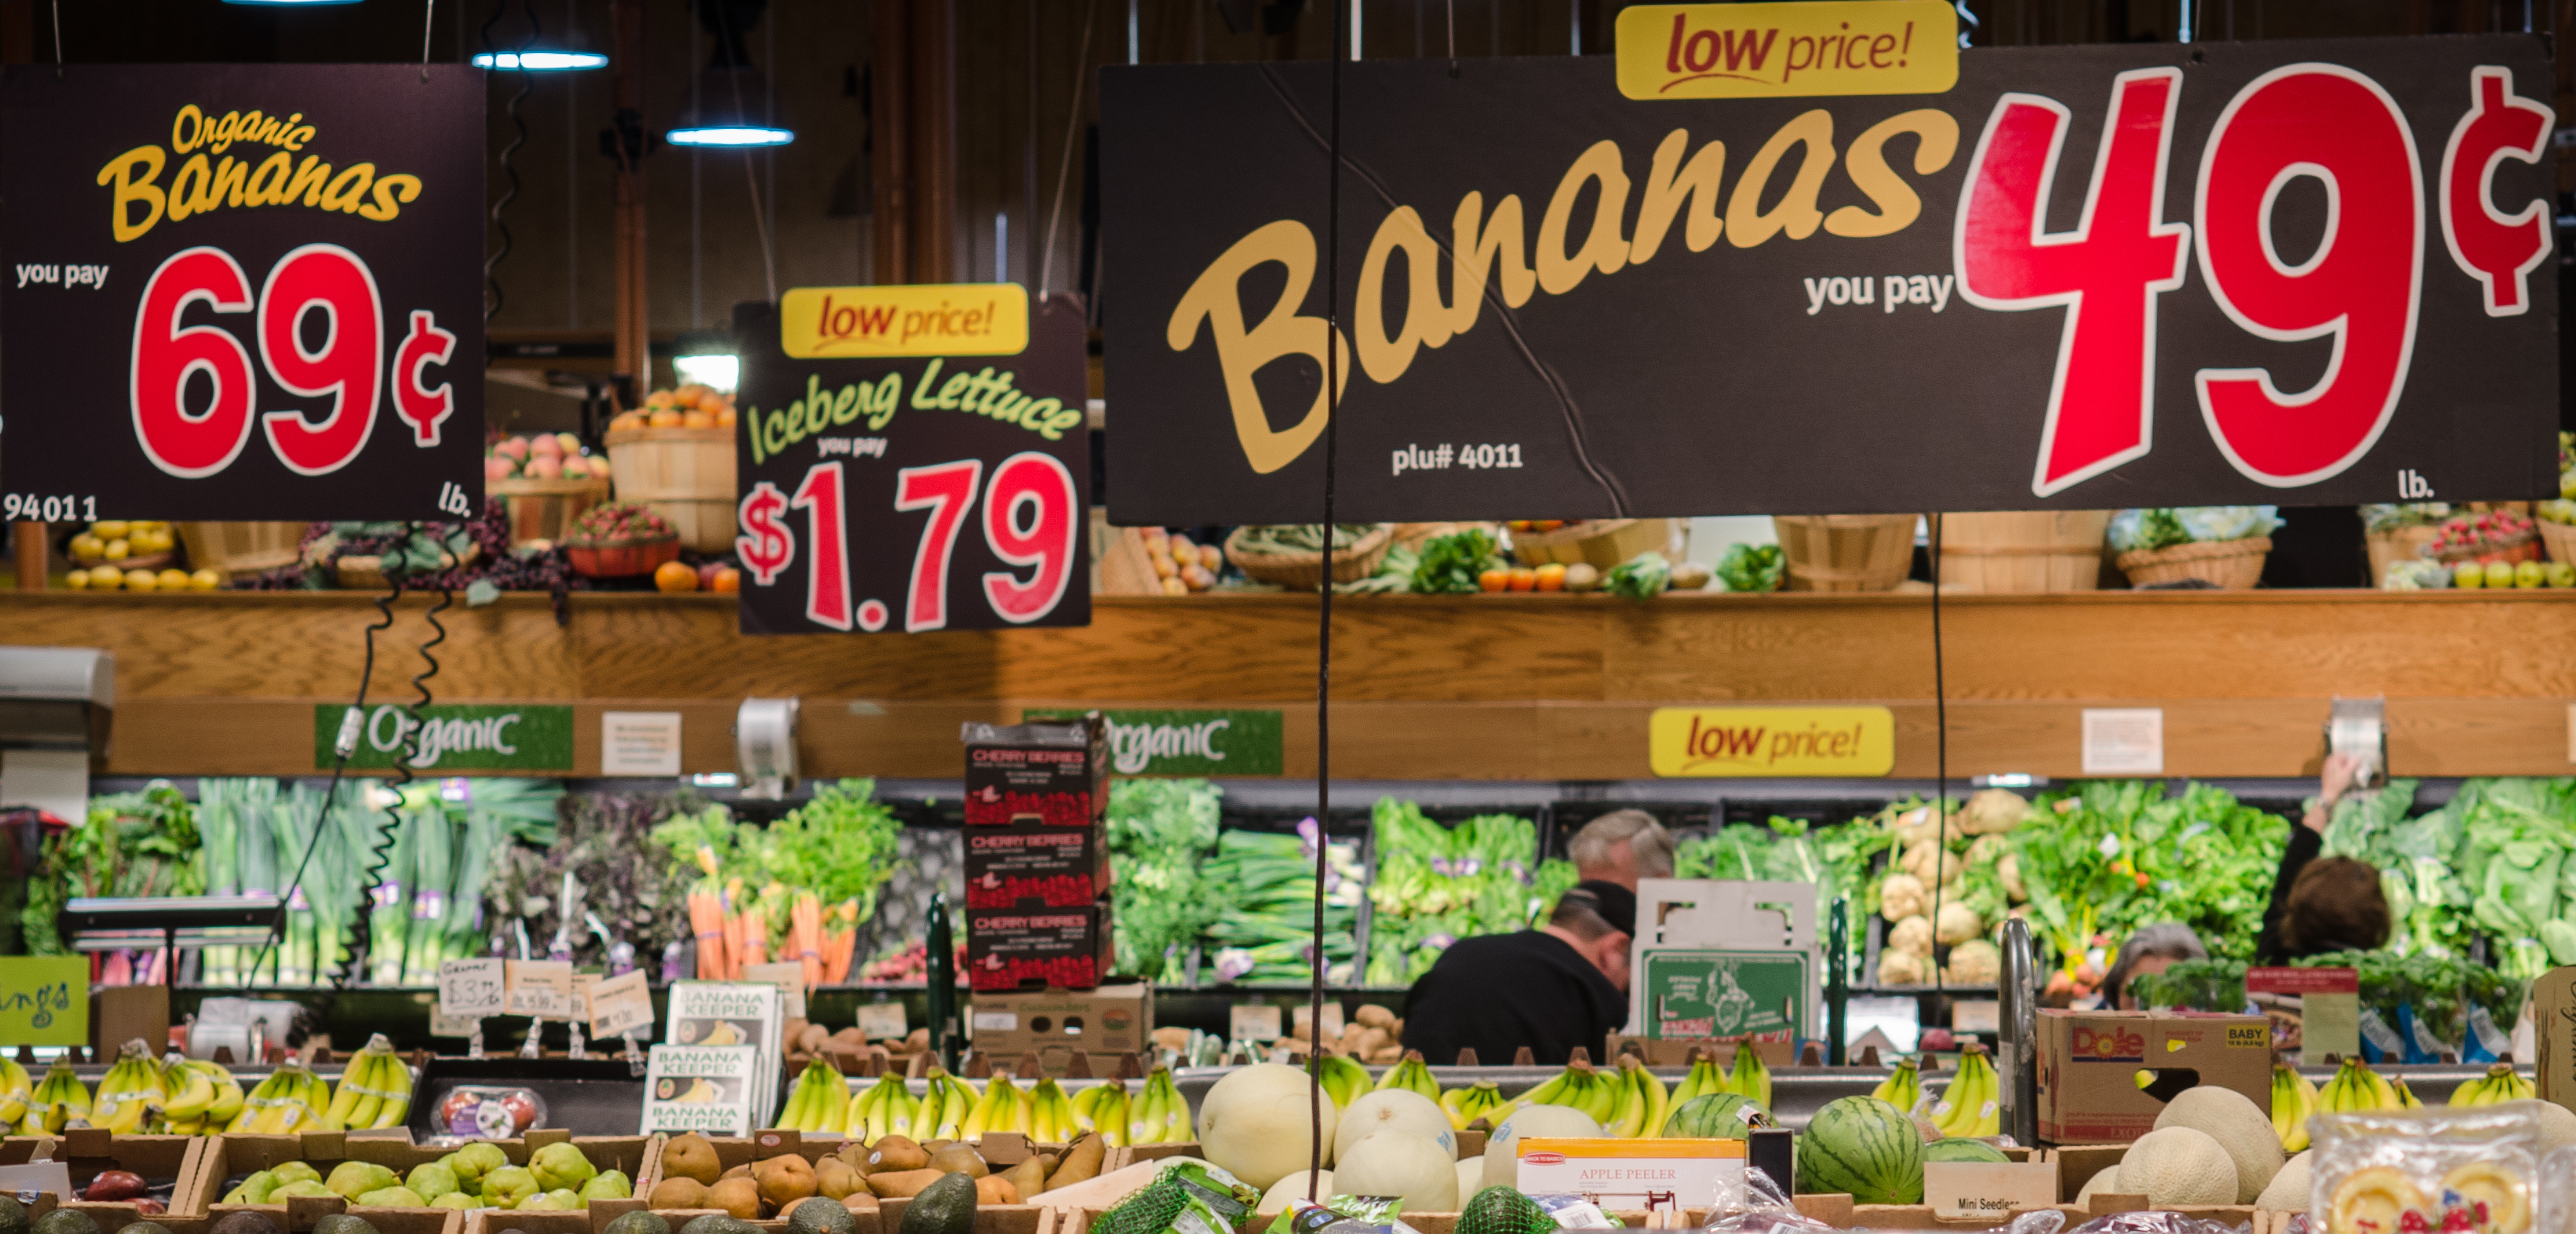 Produce section at a grocery store in Virginia. Bananas on display are 49 cents a pound for conventional or 69 cents a pound for organic.